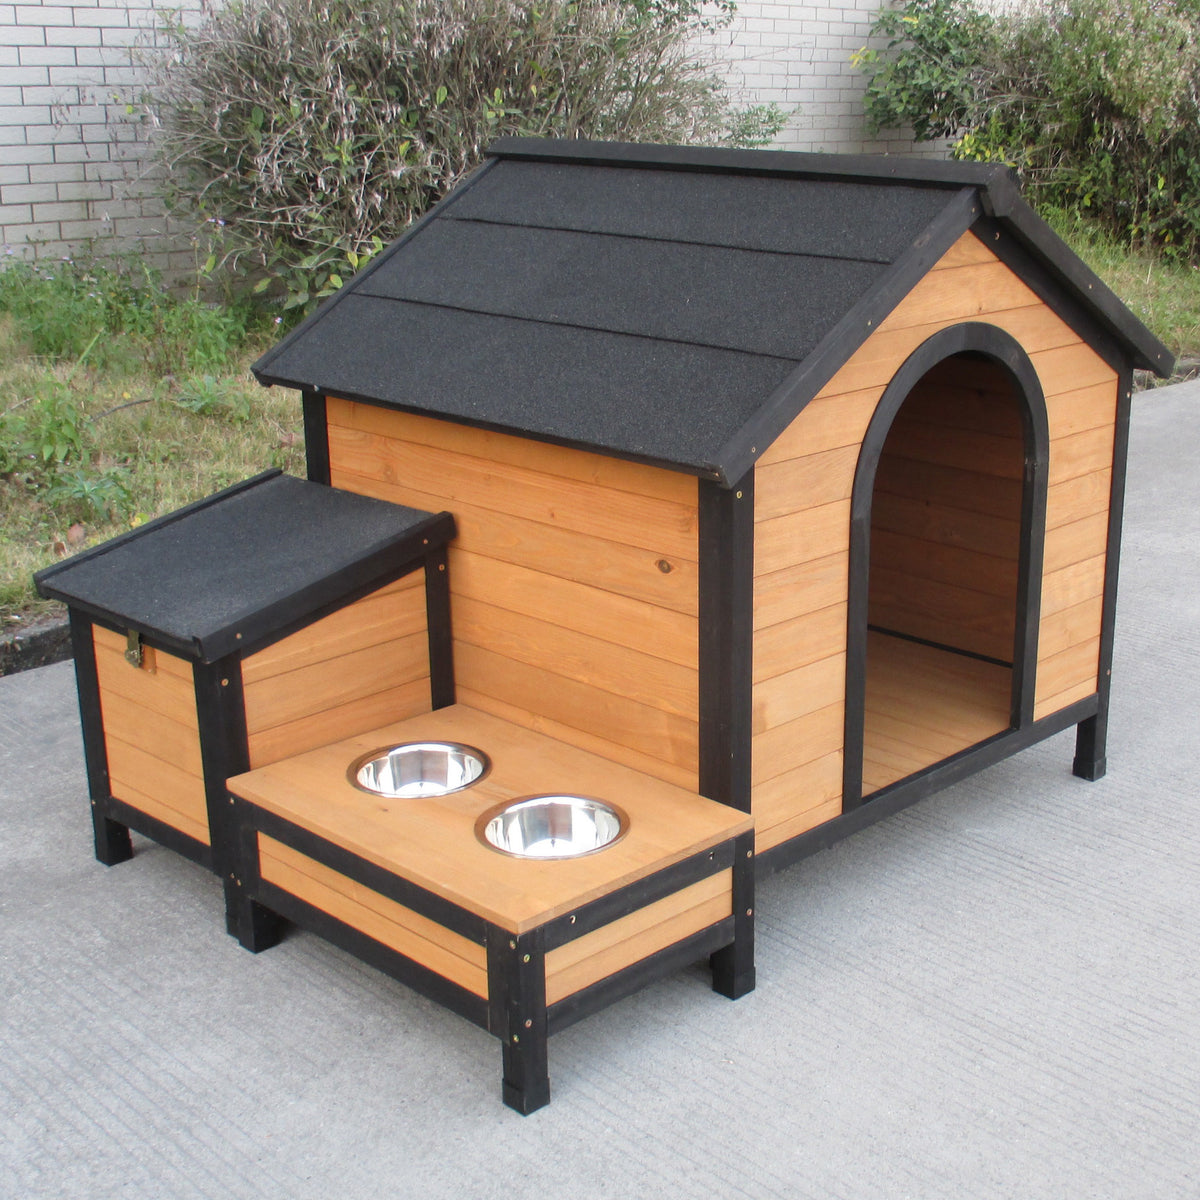 Wooden Dog Kennel with Storage and Food Tray